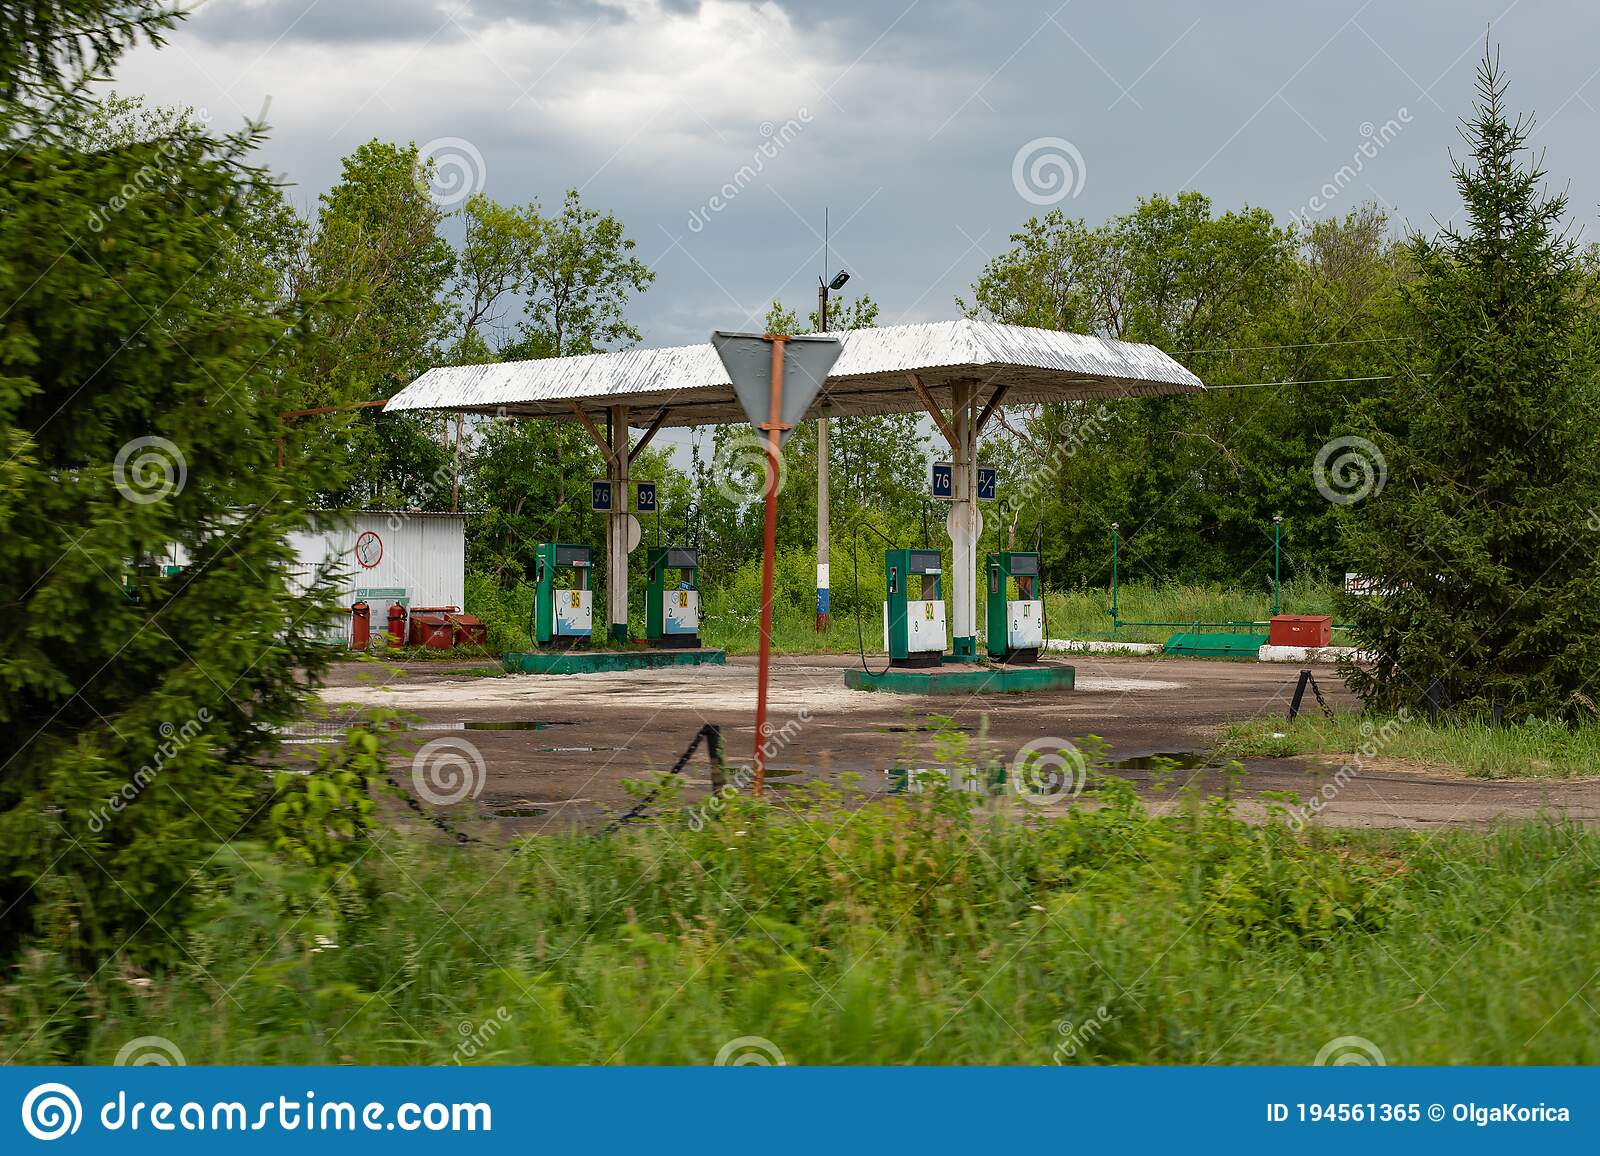 Nizhny Novgorod Russia July 9 2020 Empty Old Rural Gas Station Dispensers With Gasoline And Diesel Fuel An Abandoned Fuel Editorial Image Image Of Liquid Auto 194561365